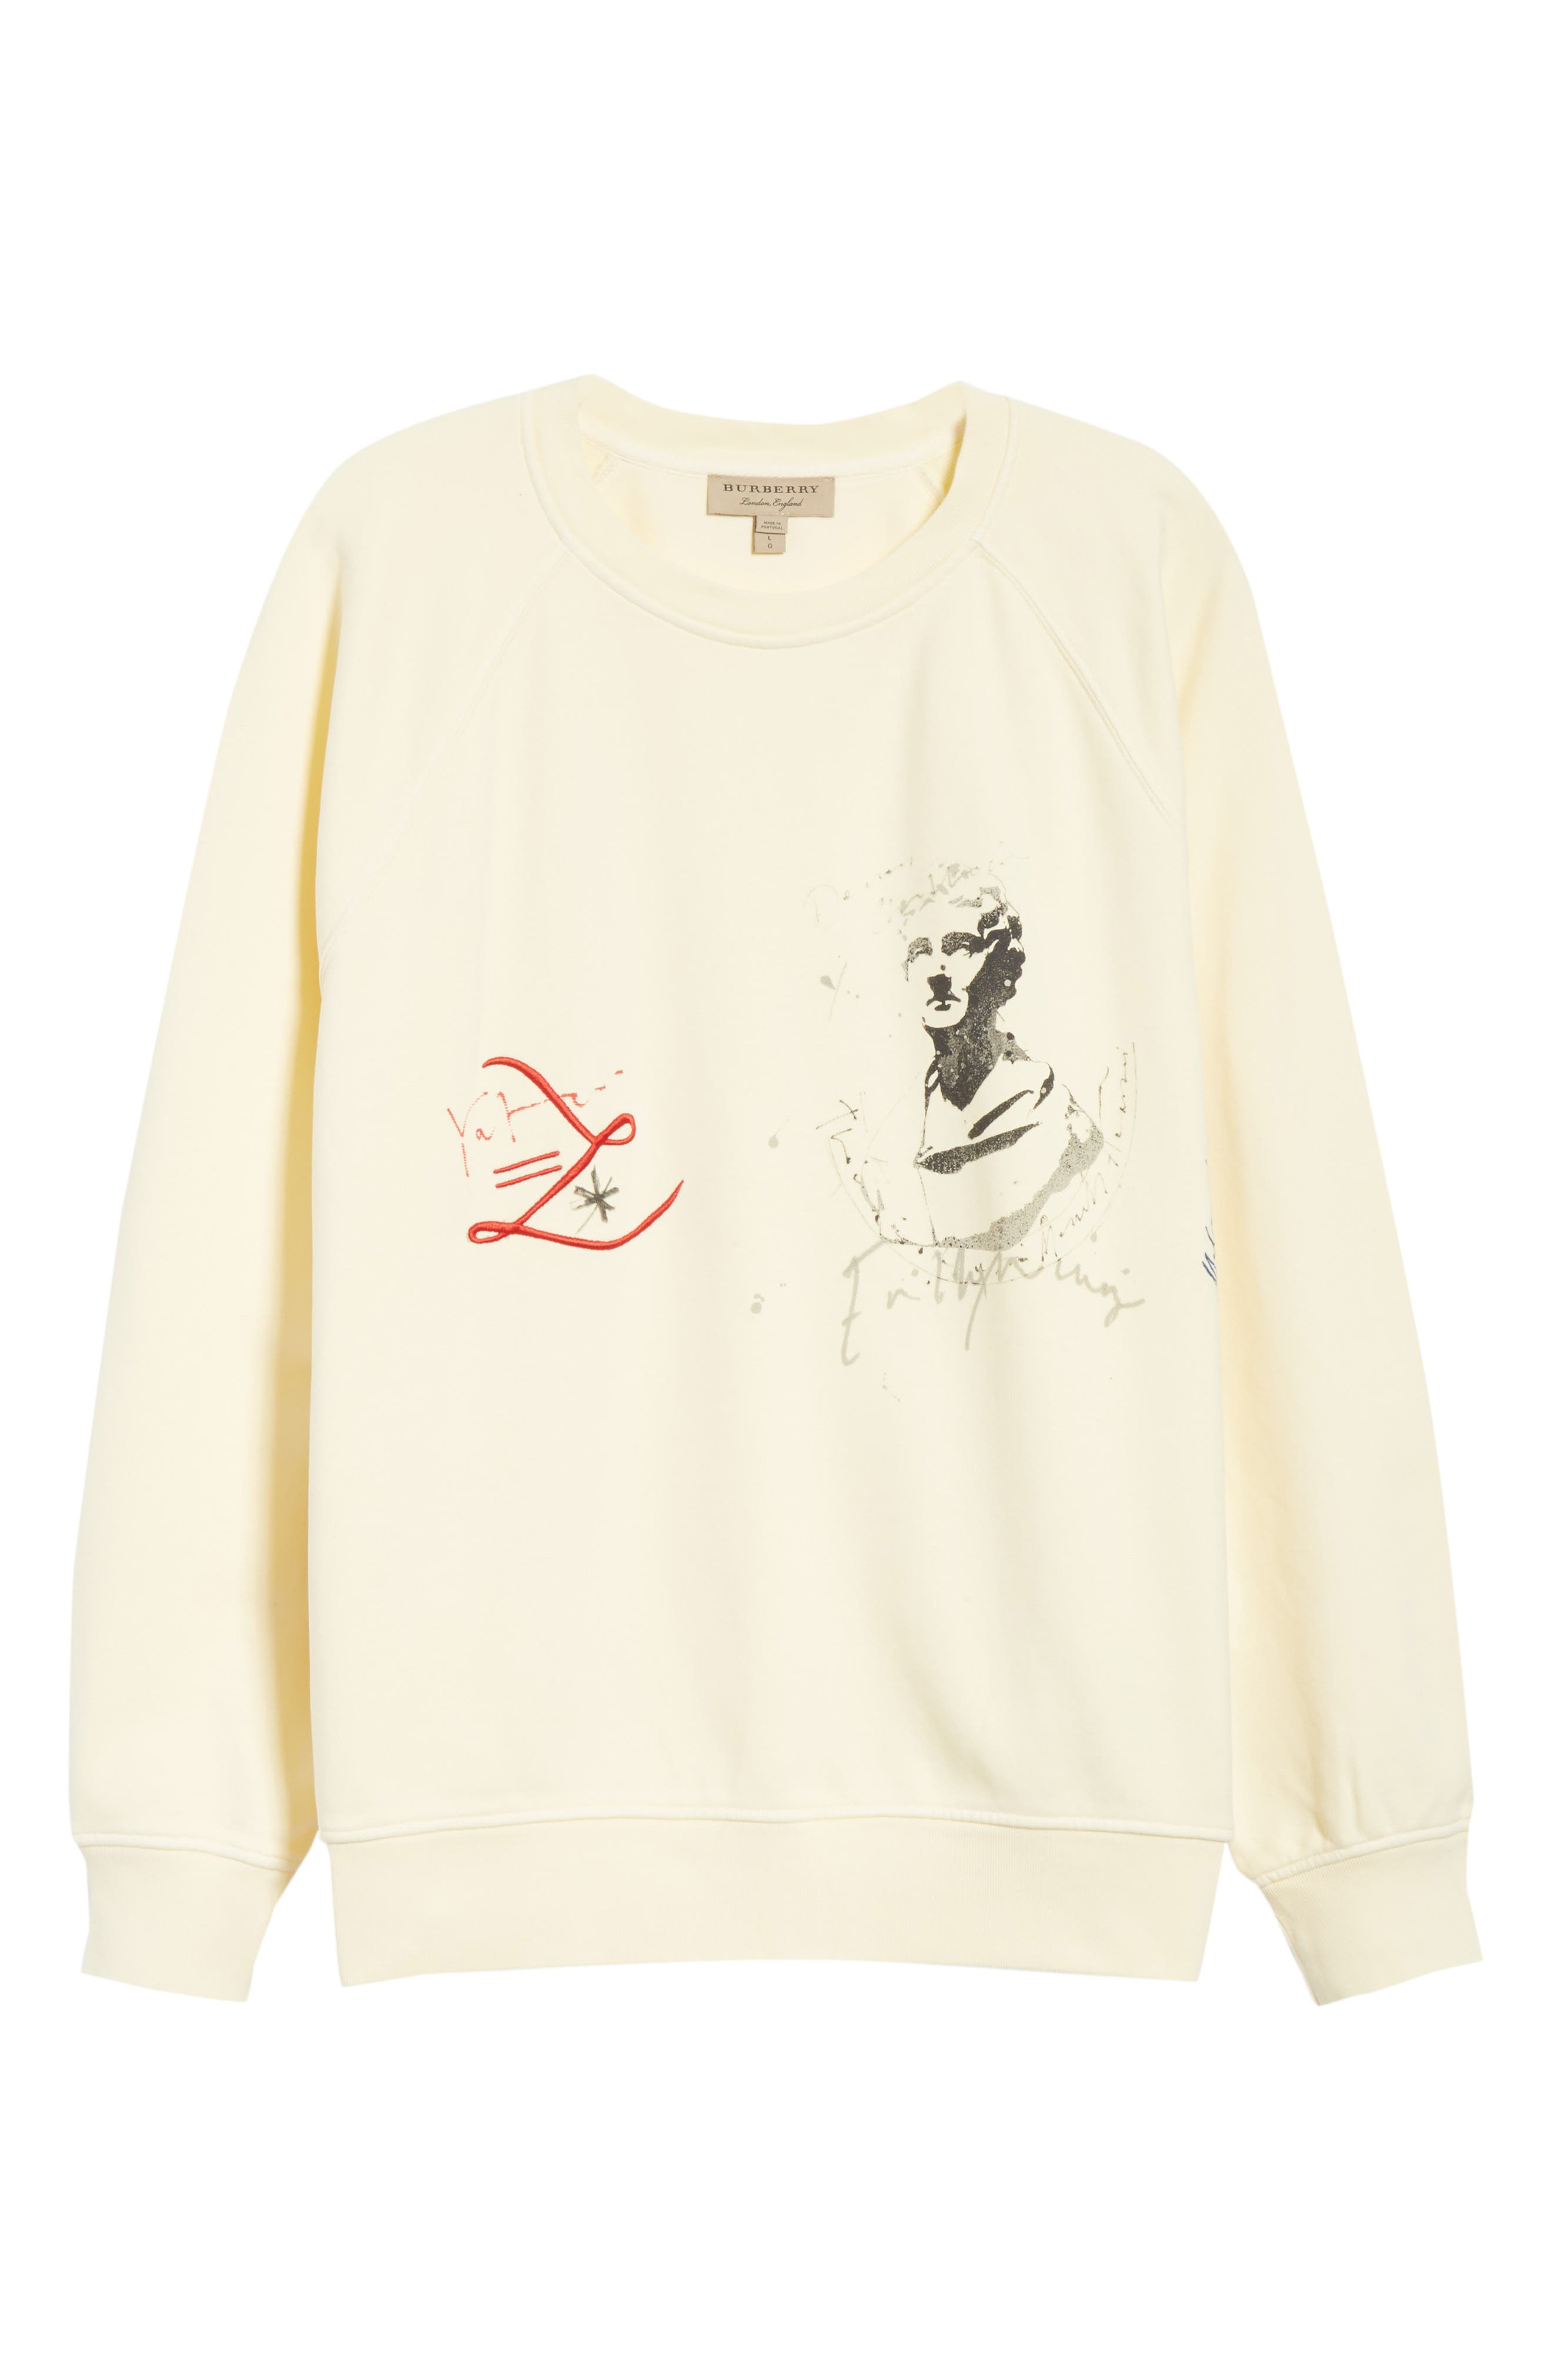 Earlford Graphic Sweatshirt,                             Alternate thumbnail 6, color,                             Pale Yellow